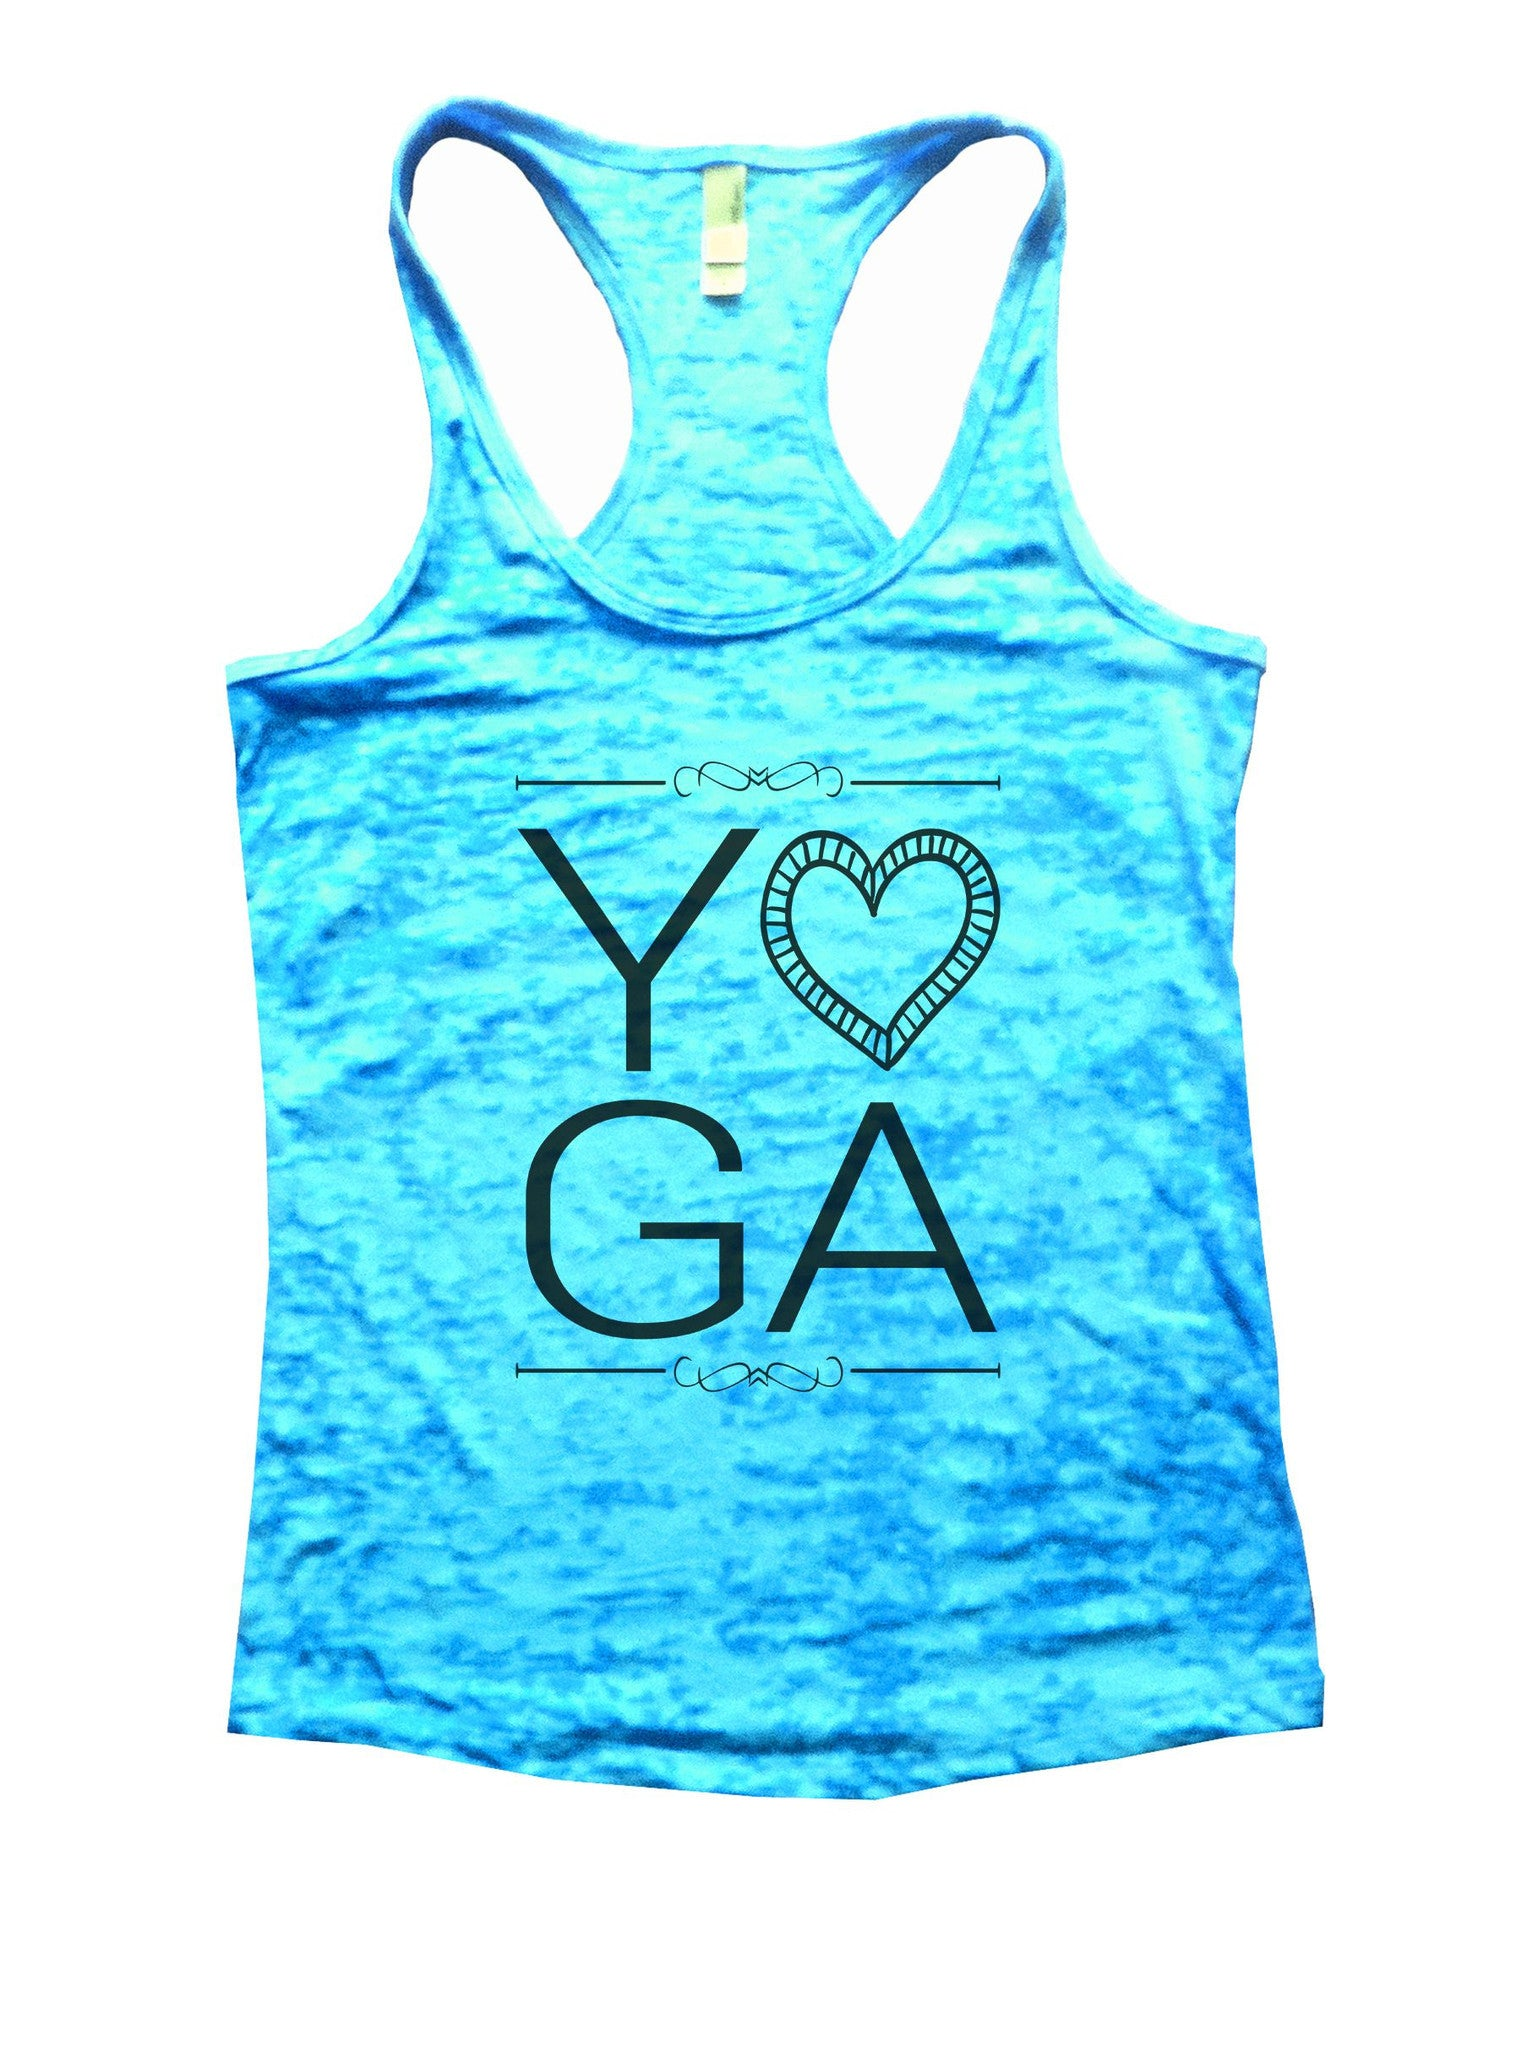 Yoga Burnout Tank Top By BurnoutTankTops.com - 838 - Funny Shirts Tank Tops Burnouts and Triblends  - 4